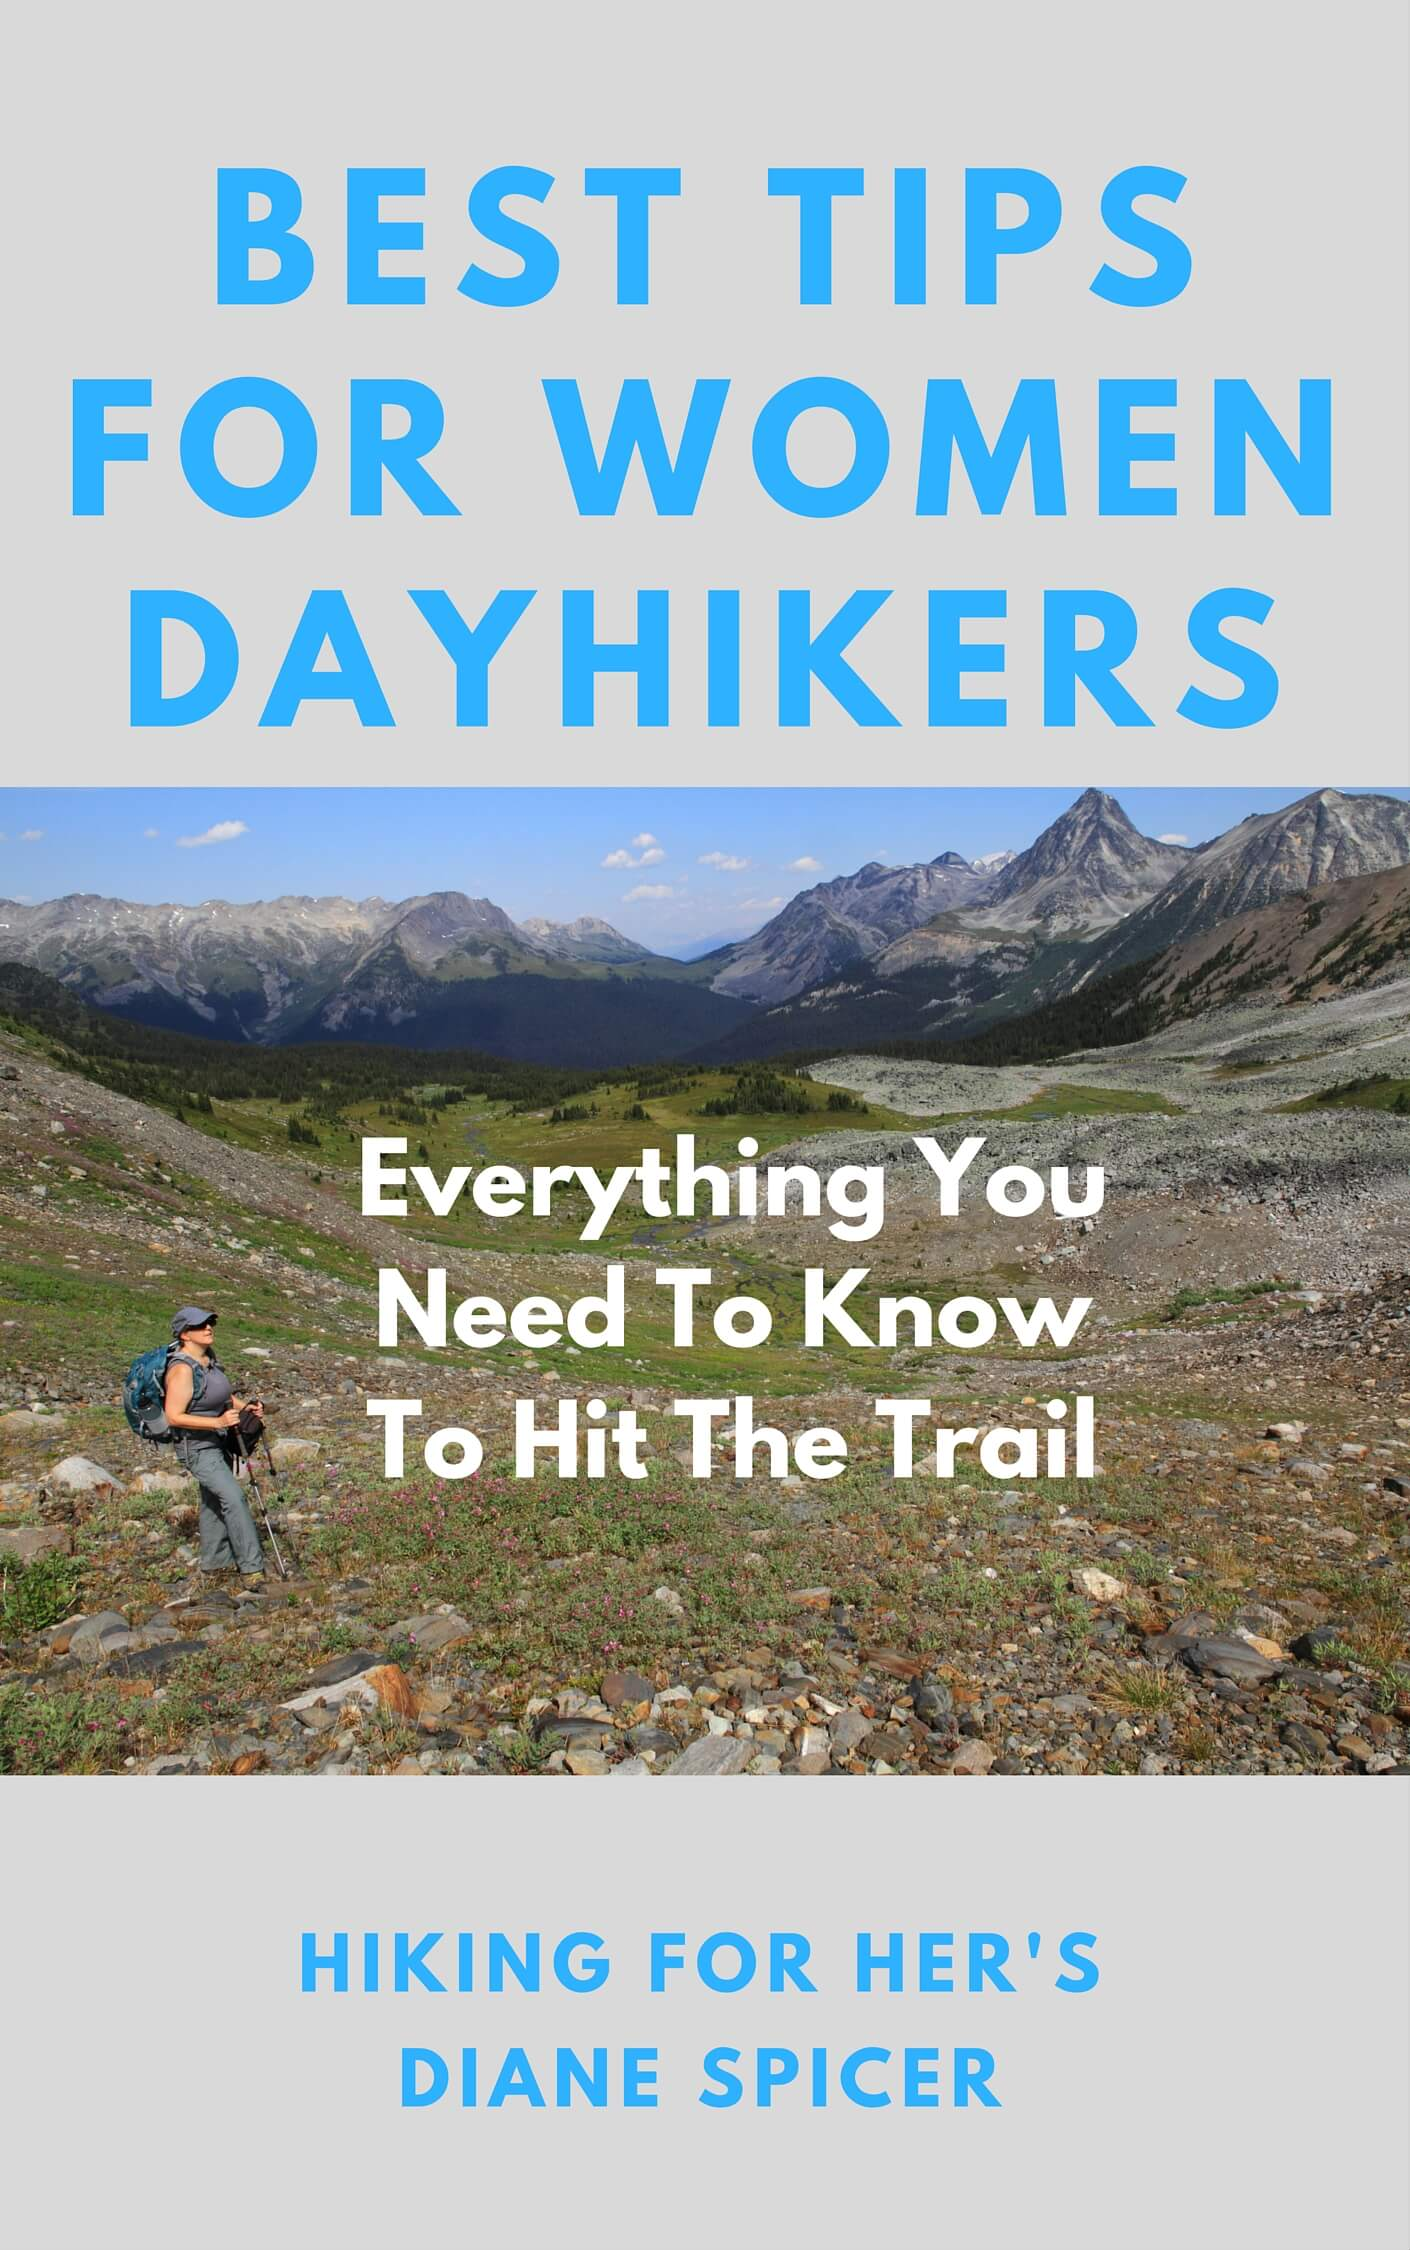 Day hike tips for women should come from an experienced female day hiker. Hiking For Her is an excellent resource for dayhiking tips. #dayhike #womenhikers #femalehikers #hikingtips #hikingforher